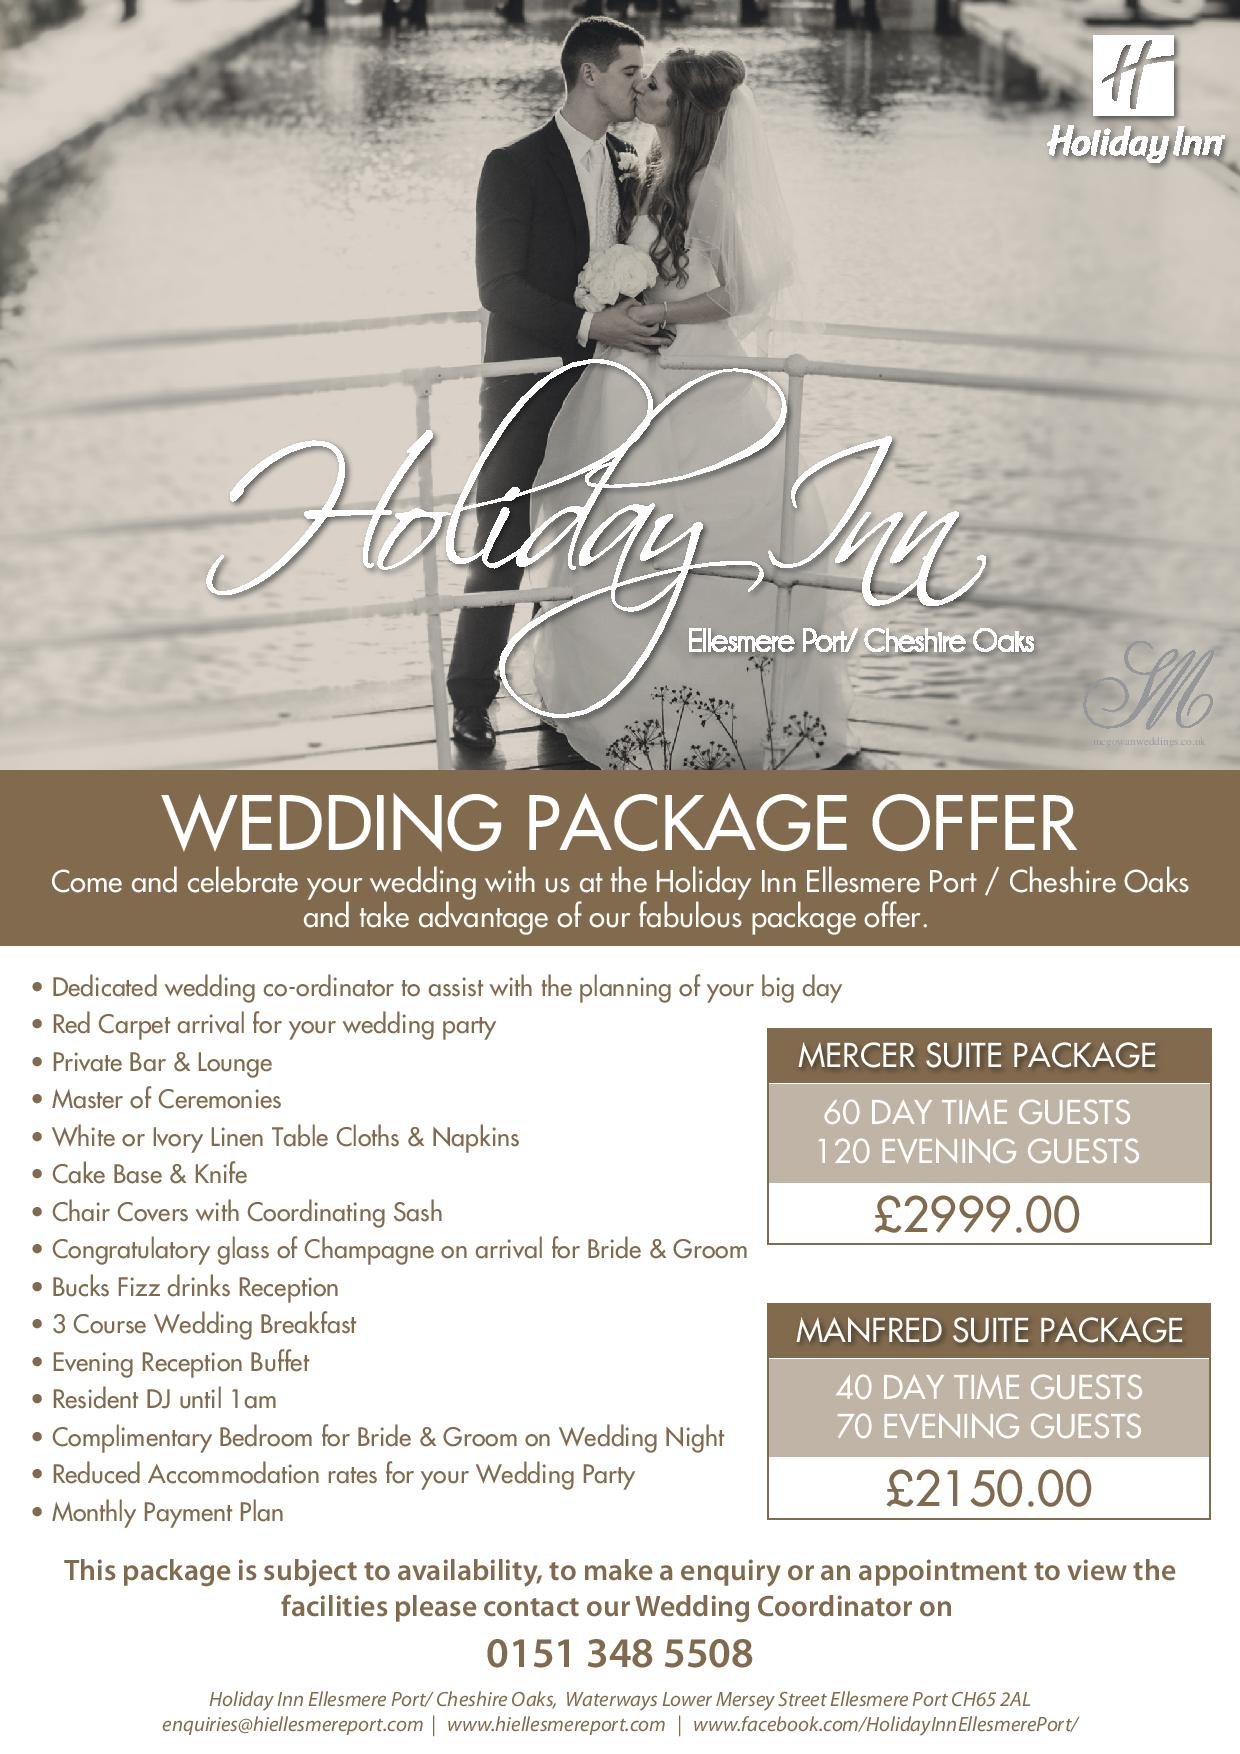 Holiday Inn Ellesmere Port Cheshire Oaks Wedding Fayre special Offer